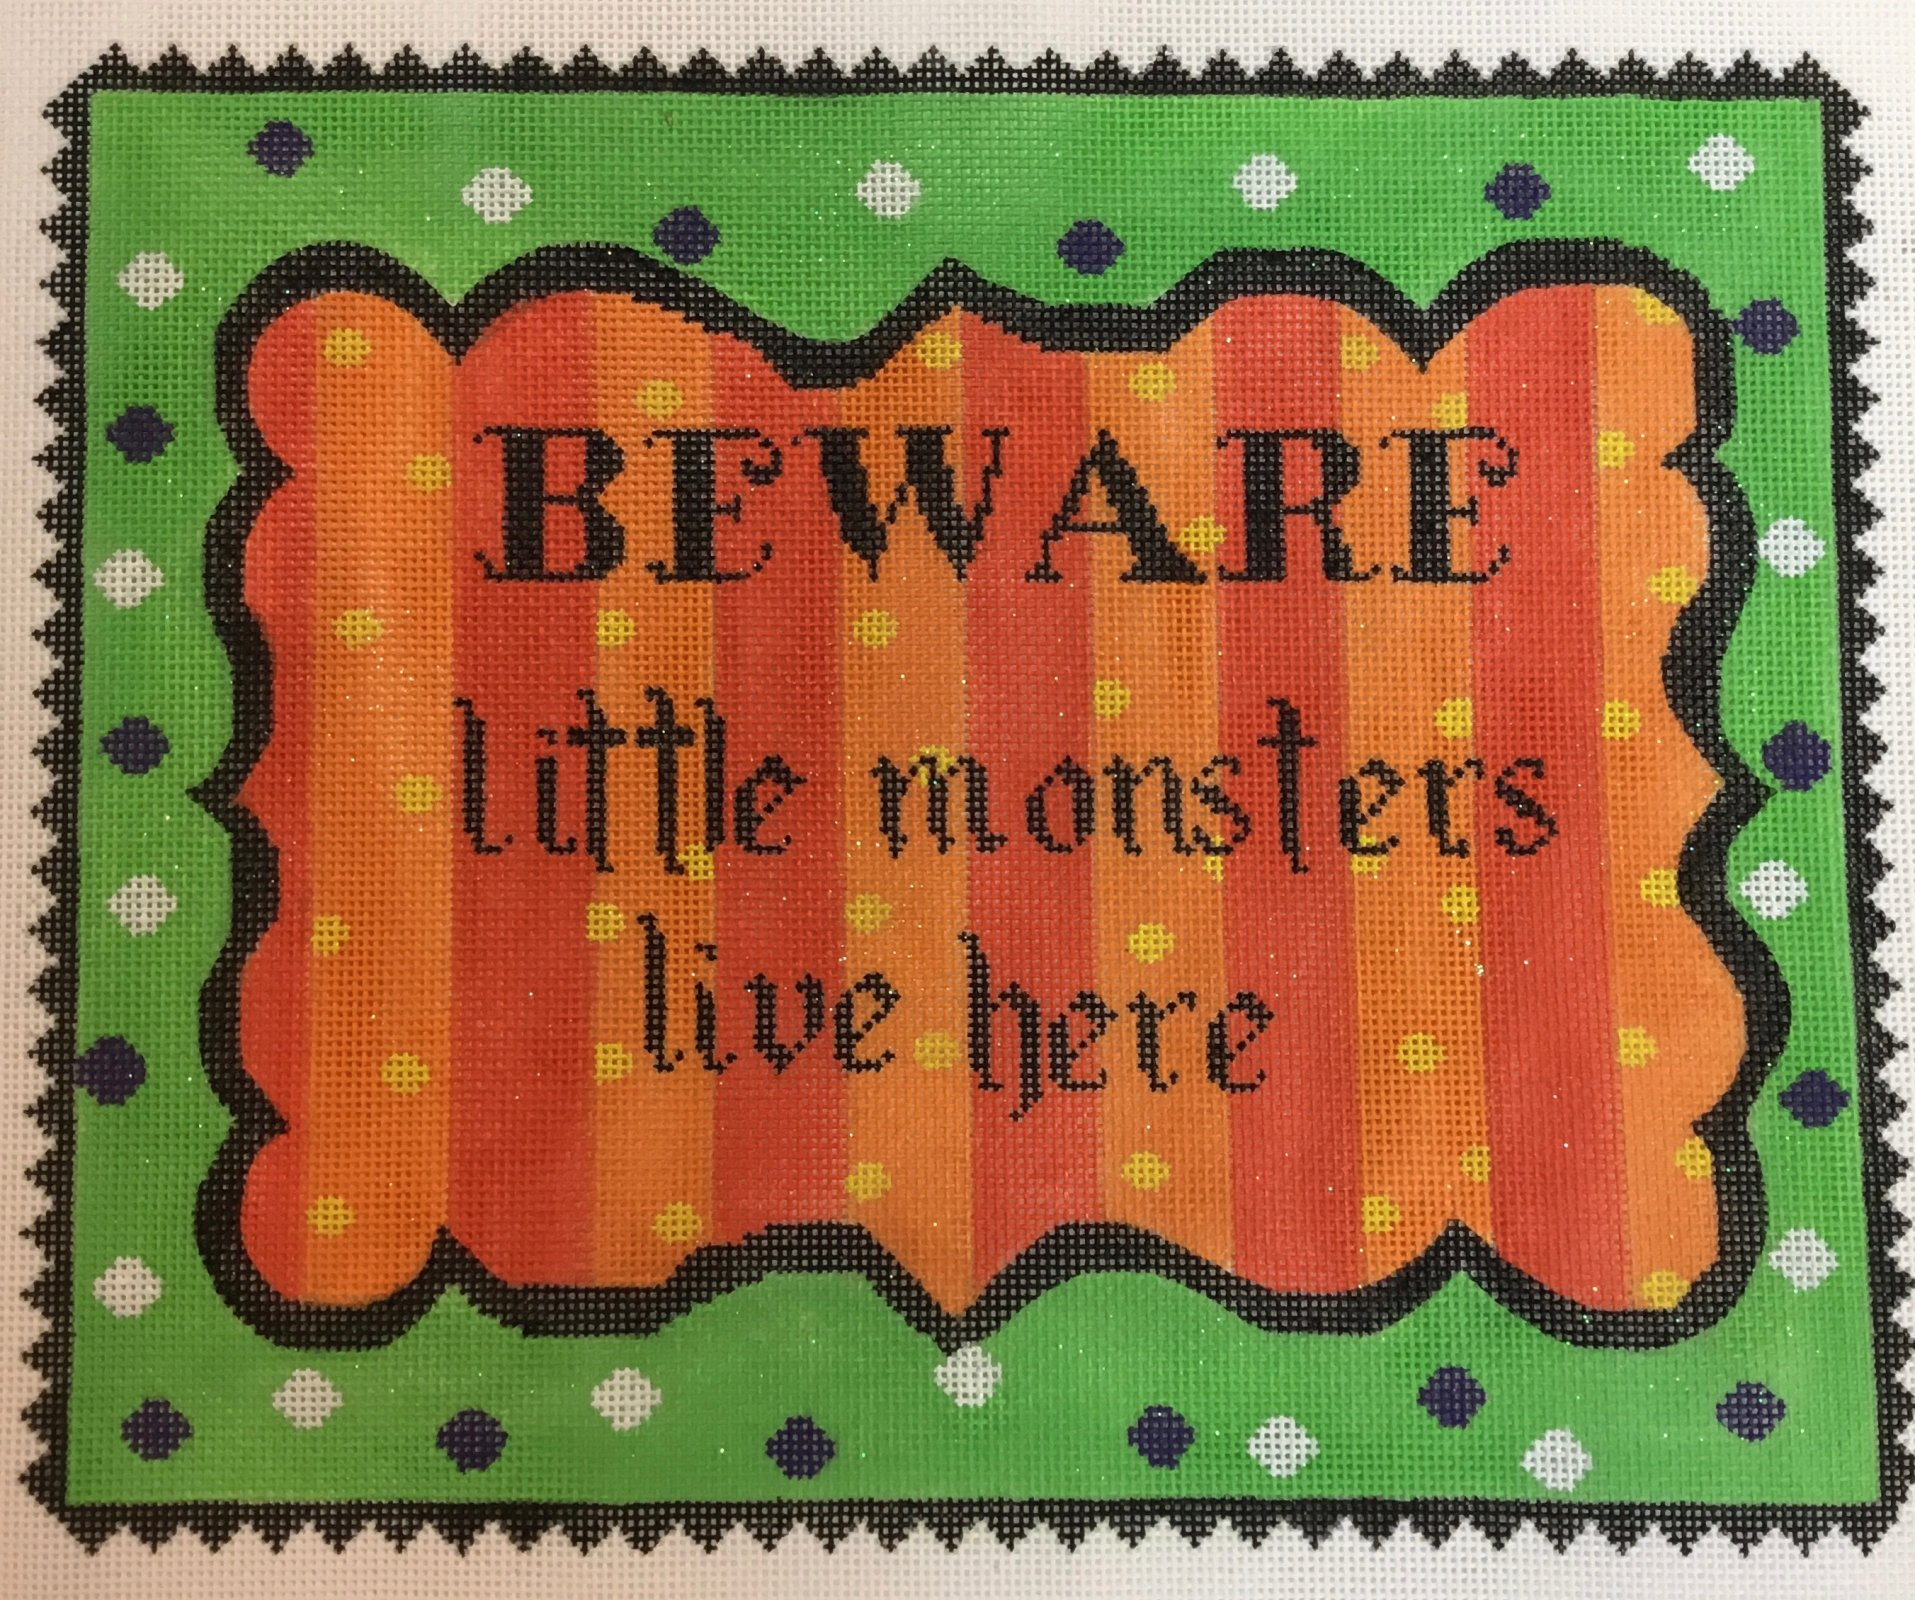 Beware Little Monsters, 18ct., 8.5 x 10.5